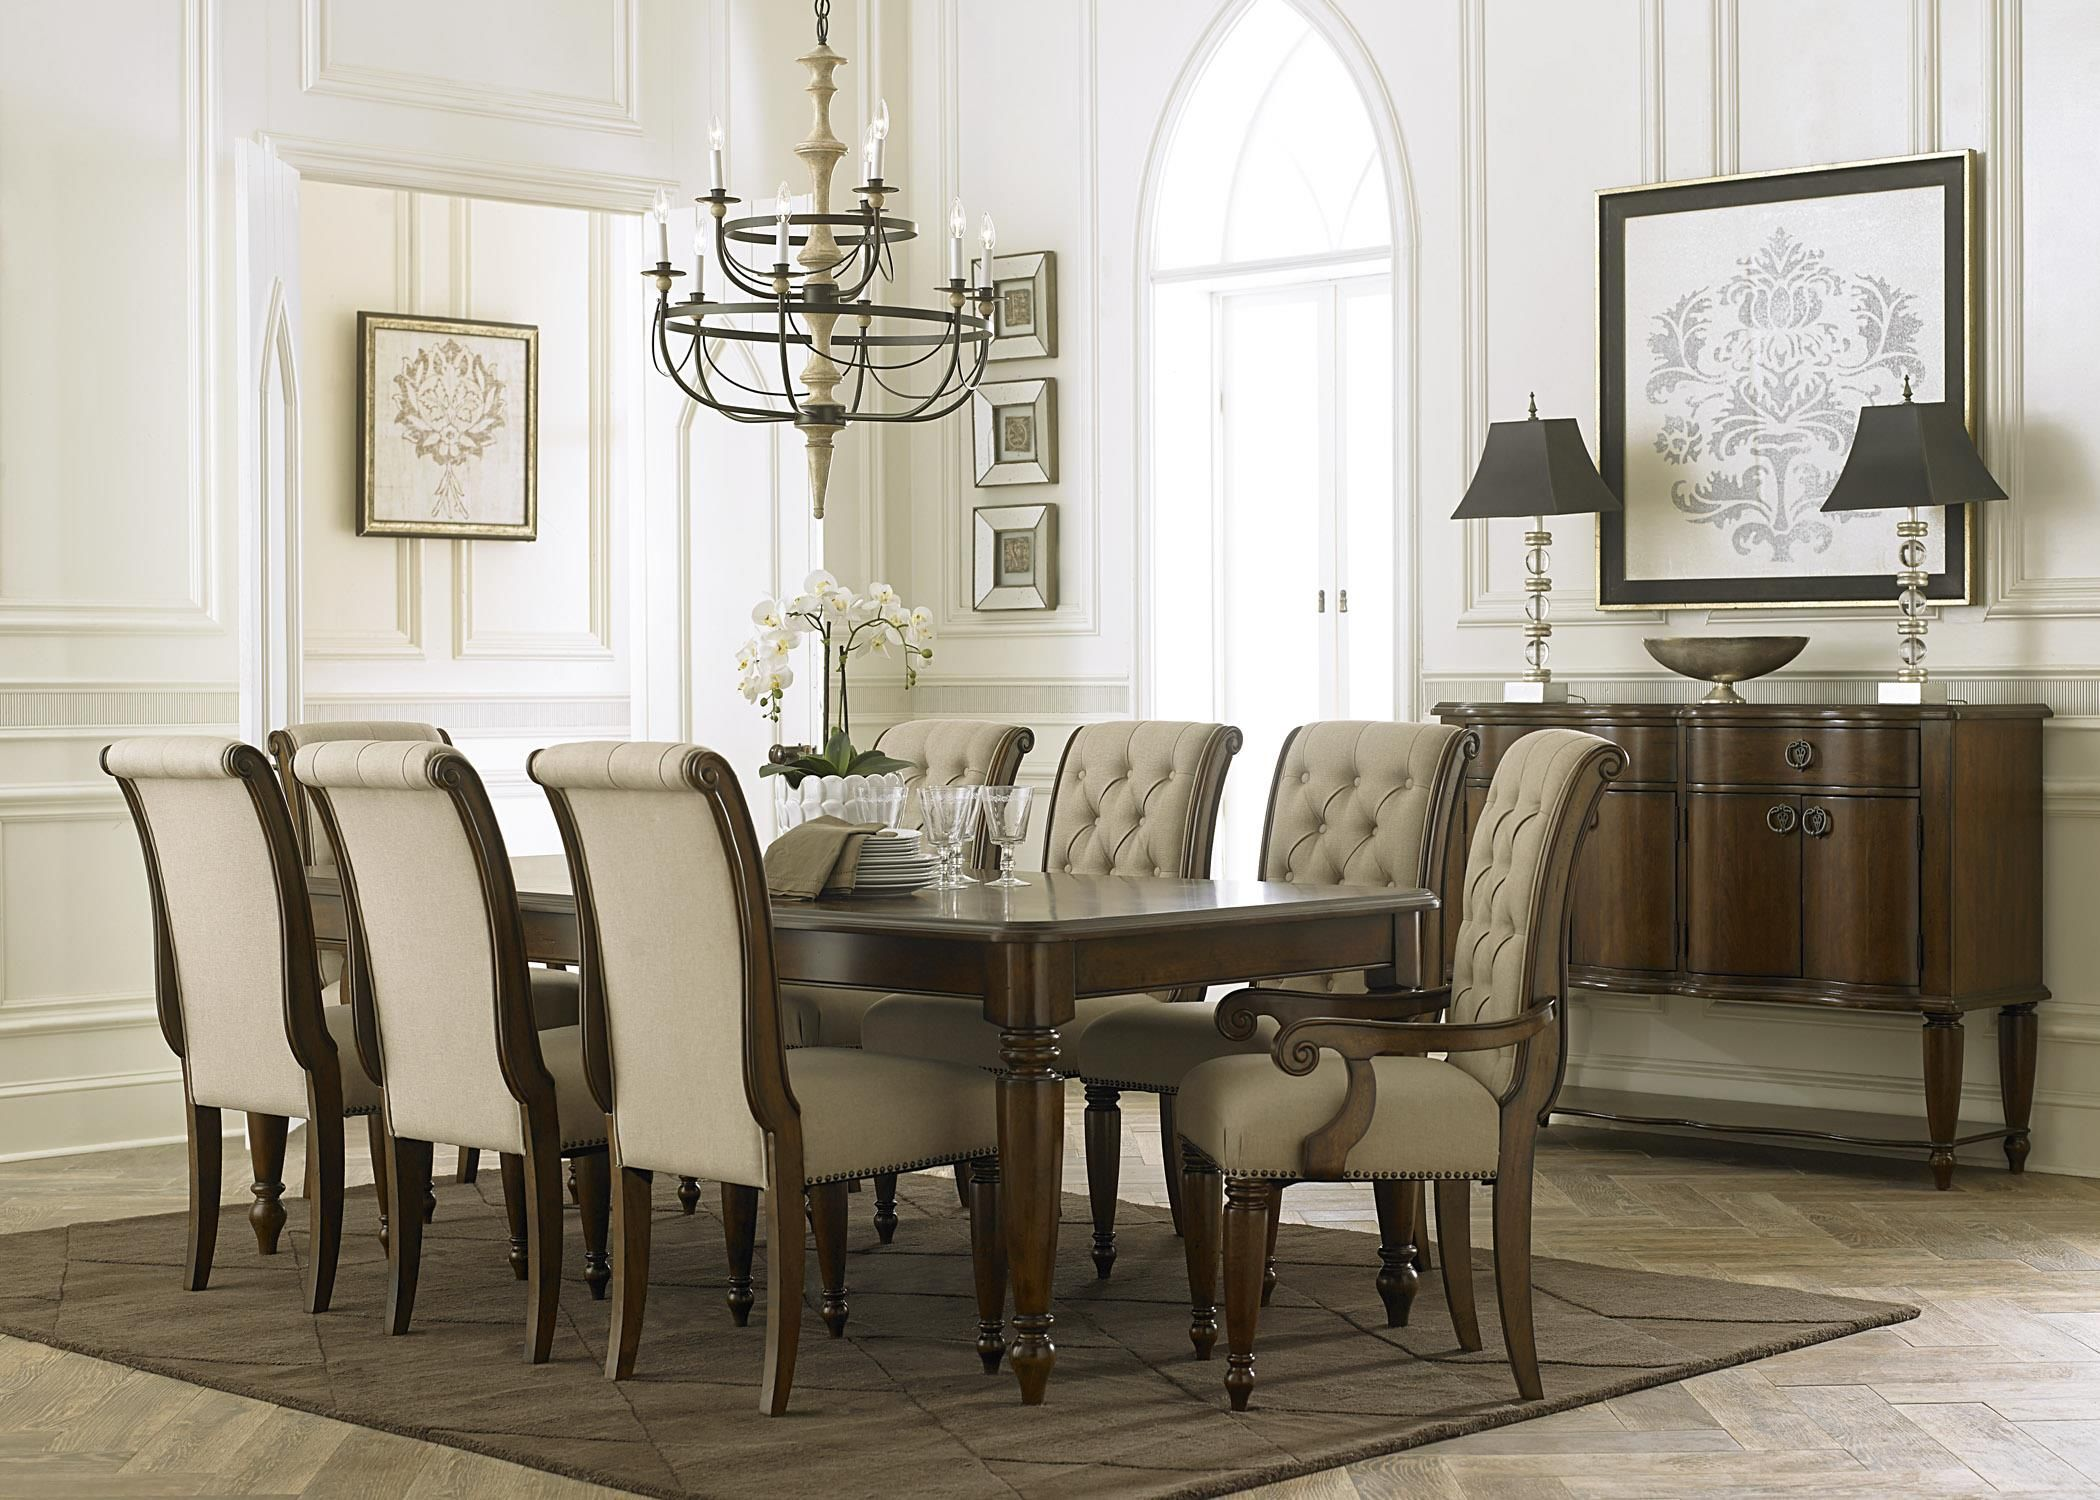 Cotswold Formal Dining Room Groupsarah Randolphj At Virginia Prepossessing 9 Pcs Dining Room Set Design Decoration